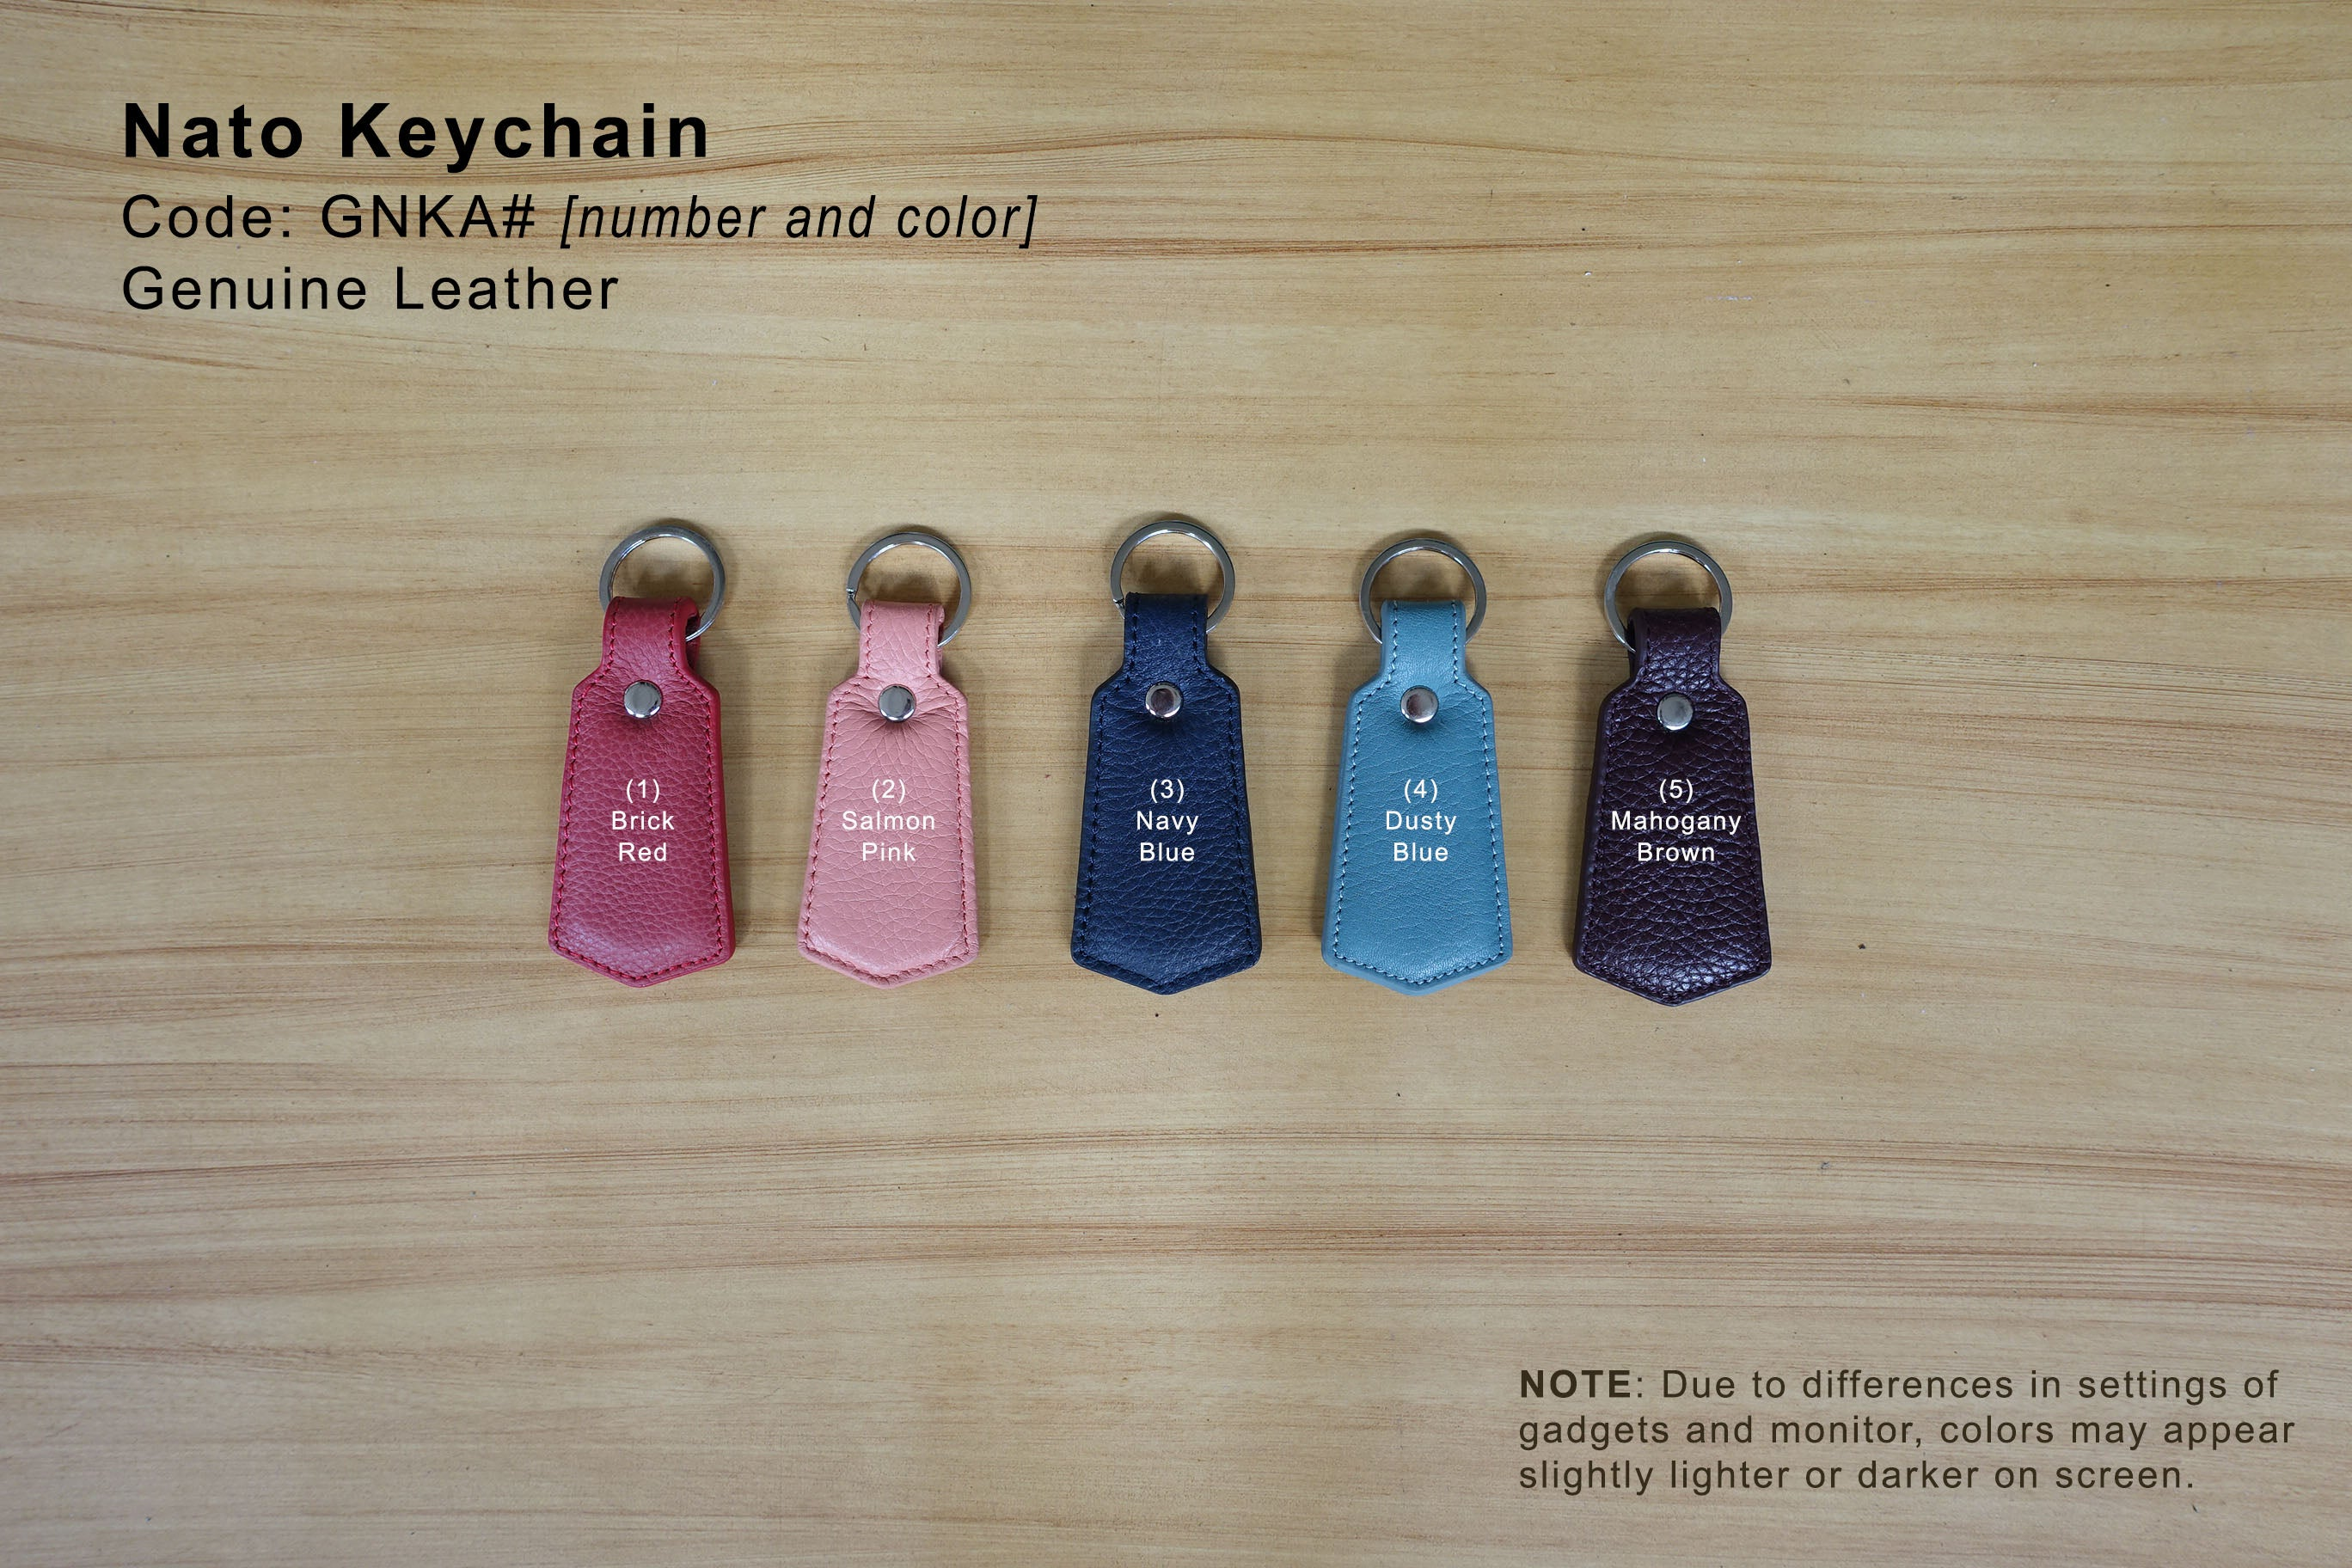 NATO Key Chain for sale | Belleza